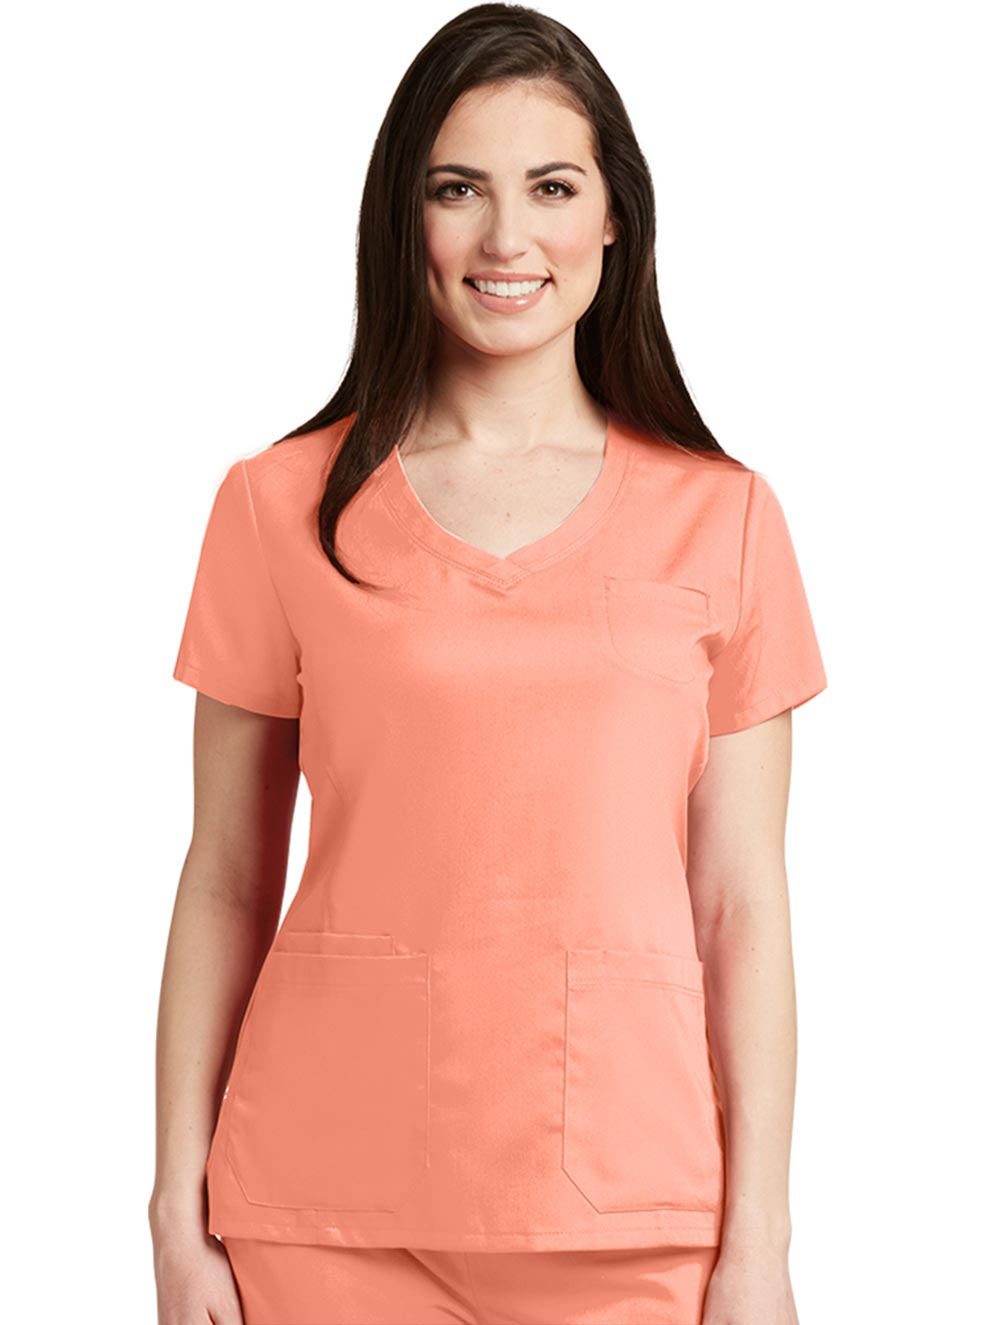 Shaped V-Neck Top w/ Chest Welt Pocket